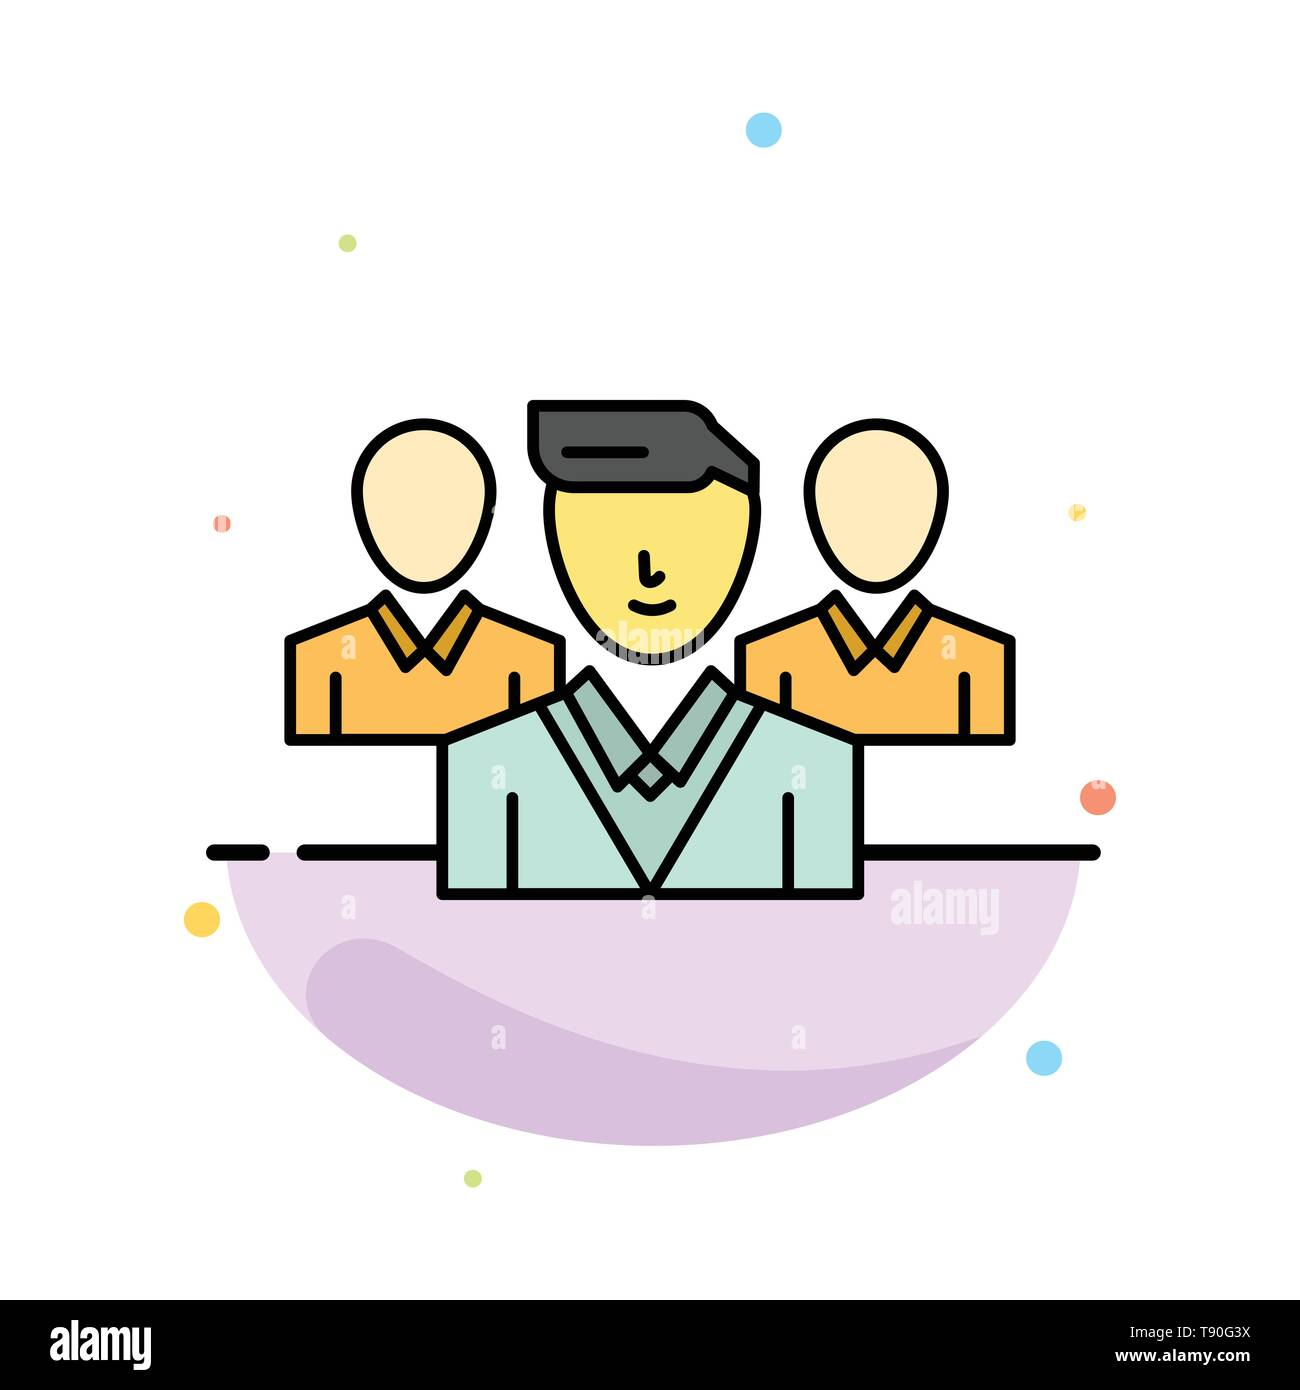 Staff, Security, Friend zone, Gang Abstract Flat Color Icon Template - Stock Image